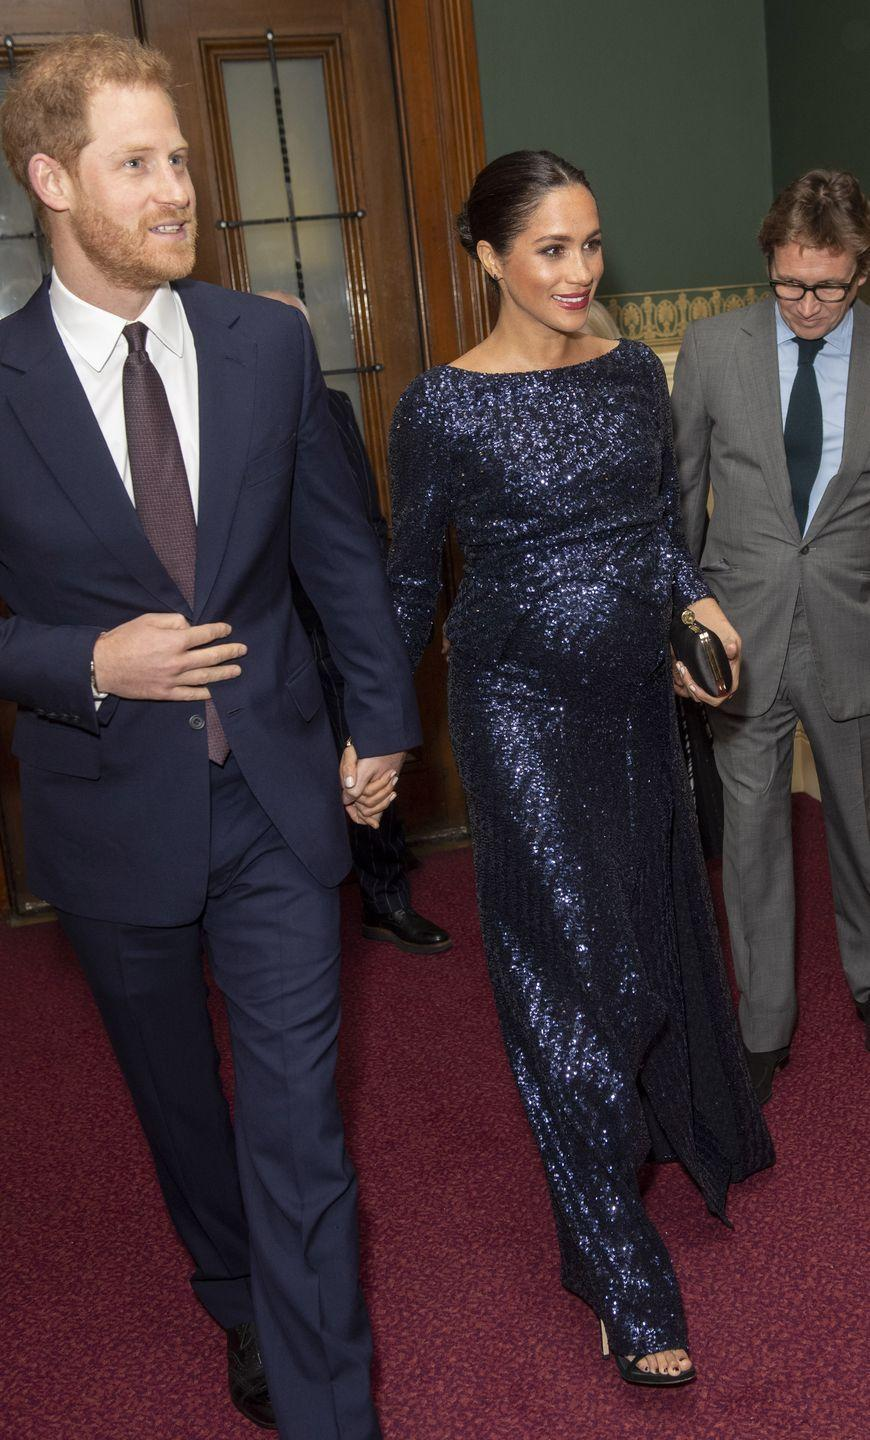 "<p>Meghan and Harry attended the premiere of Cirque du Soleil's newest show, Totem, to benefit Sentebale in London. The Duchess <a href=""https://www.townandcountrymag.com/style/fashion-trends/a25903852/meghan-markle-cirque-du-soleil-sentebale-dress-roland-mouret/"" rel=""nofollow noopener"" target=""_blank"" data-ylk=""slk:wore a sequin gown by Roland Mouret"" class=""link rapid-noclick-resp"">wore a sequin gown by Roland Mouret </a>with a Givenchy clutch and <a href=""https://go.redirectingat.com/?id=74968X1525087&xs=1&url=https%3A%2F%2Fwww.stuartweitzman.com%2Fproducts%2Fnudist%2Fblack-suede%2F&sref=https%3A%2F%2Fwww.townandcountrymag.com%2Fstyle%2Ffashion-trends%2Fa25903852%2Fmeghan-markle-cirque-du-soleil-sentebale-dress-roland-mouret%2F"" rel=""nofollow noopener"" target=""_blank"" data-ylk=""slk:black suede heels by Stuart Weitzman"" class=""link rapid-noclick-resp"">black suede heels by Stuart Weitzman</a>. </p>"